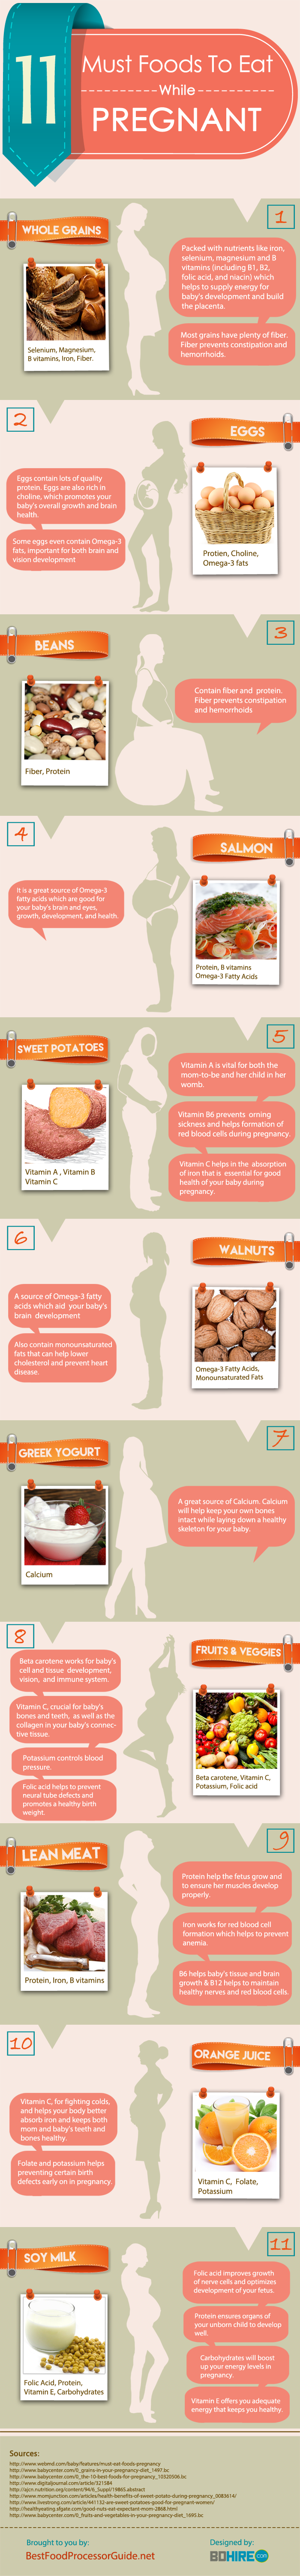 must foods to eat while pregnant